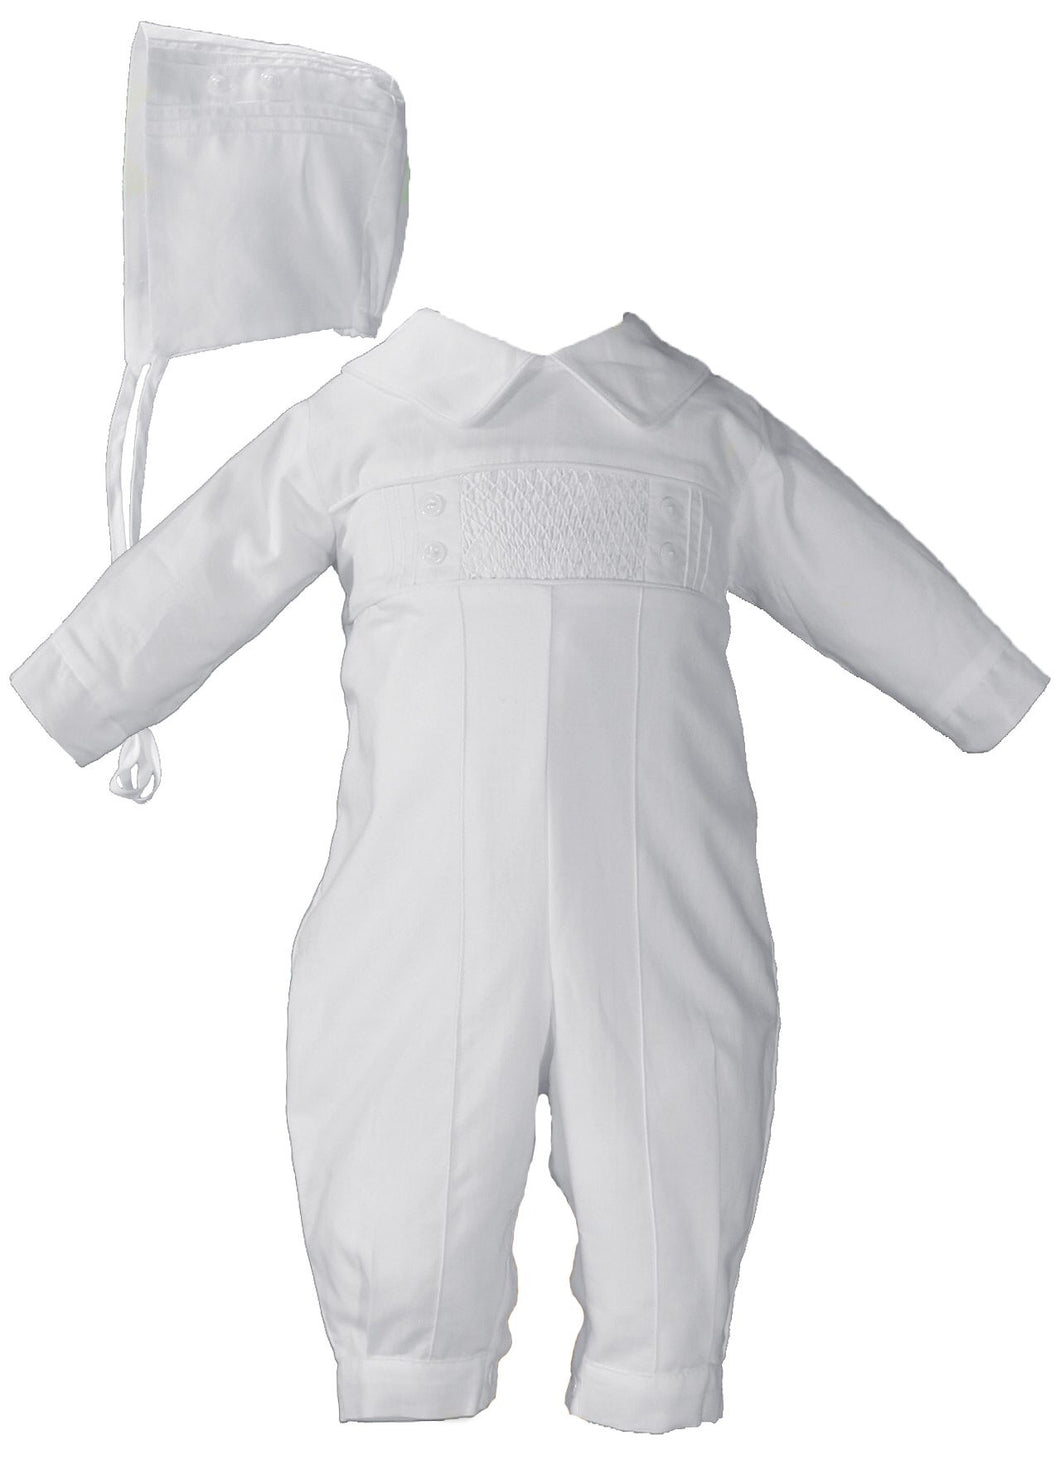 Hand Smocked Boys Pin Tucked Christening Baptism Coverall